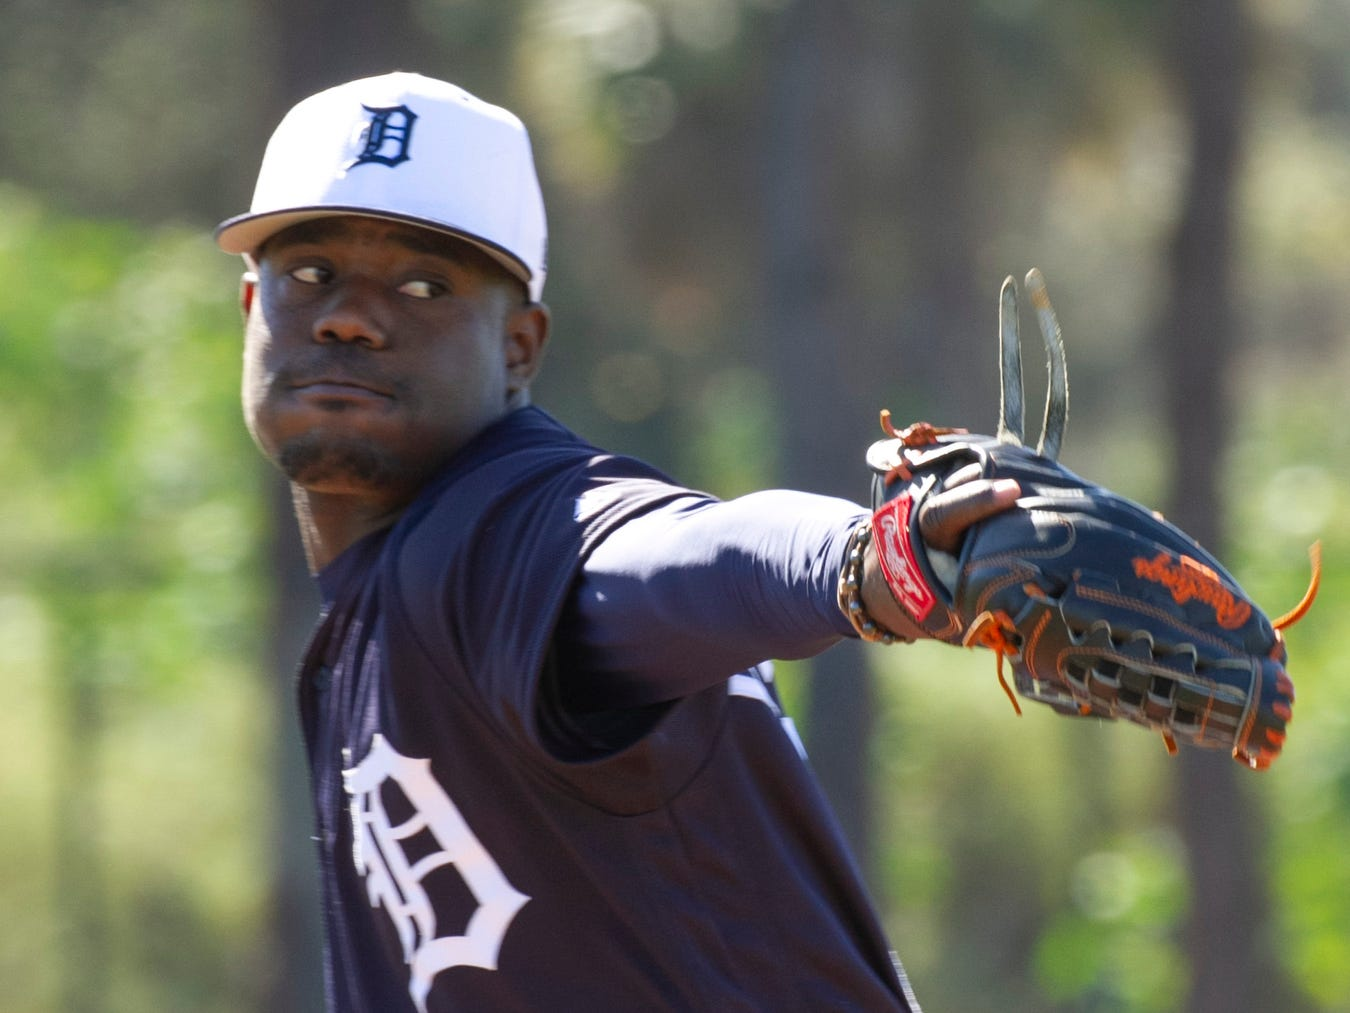 Detroit Tigers pitcher Victor Alcantara eyes the plate as he takes fielding drills.